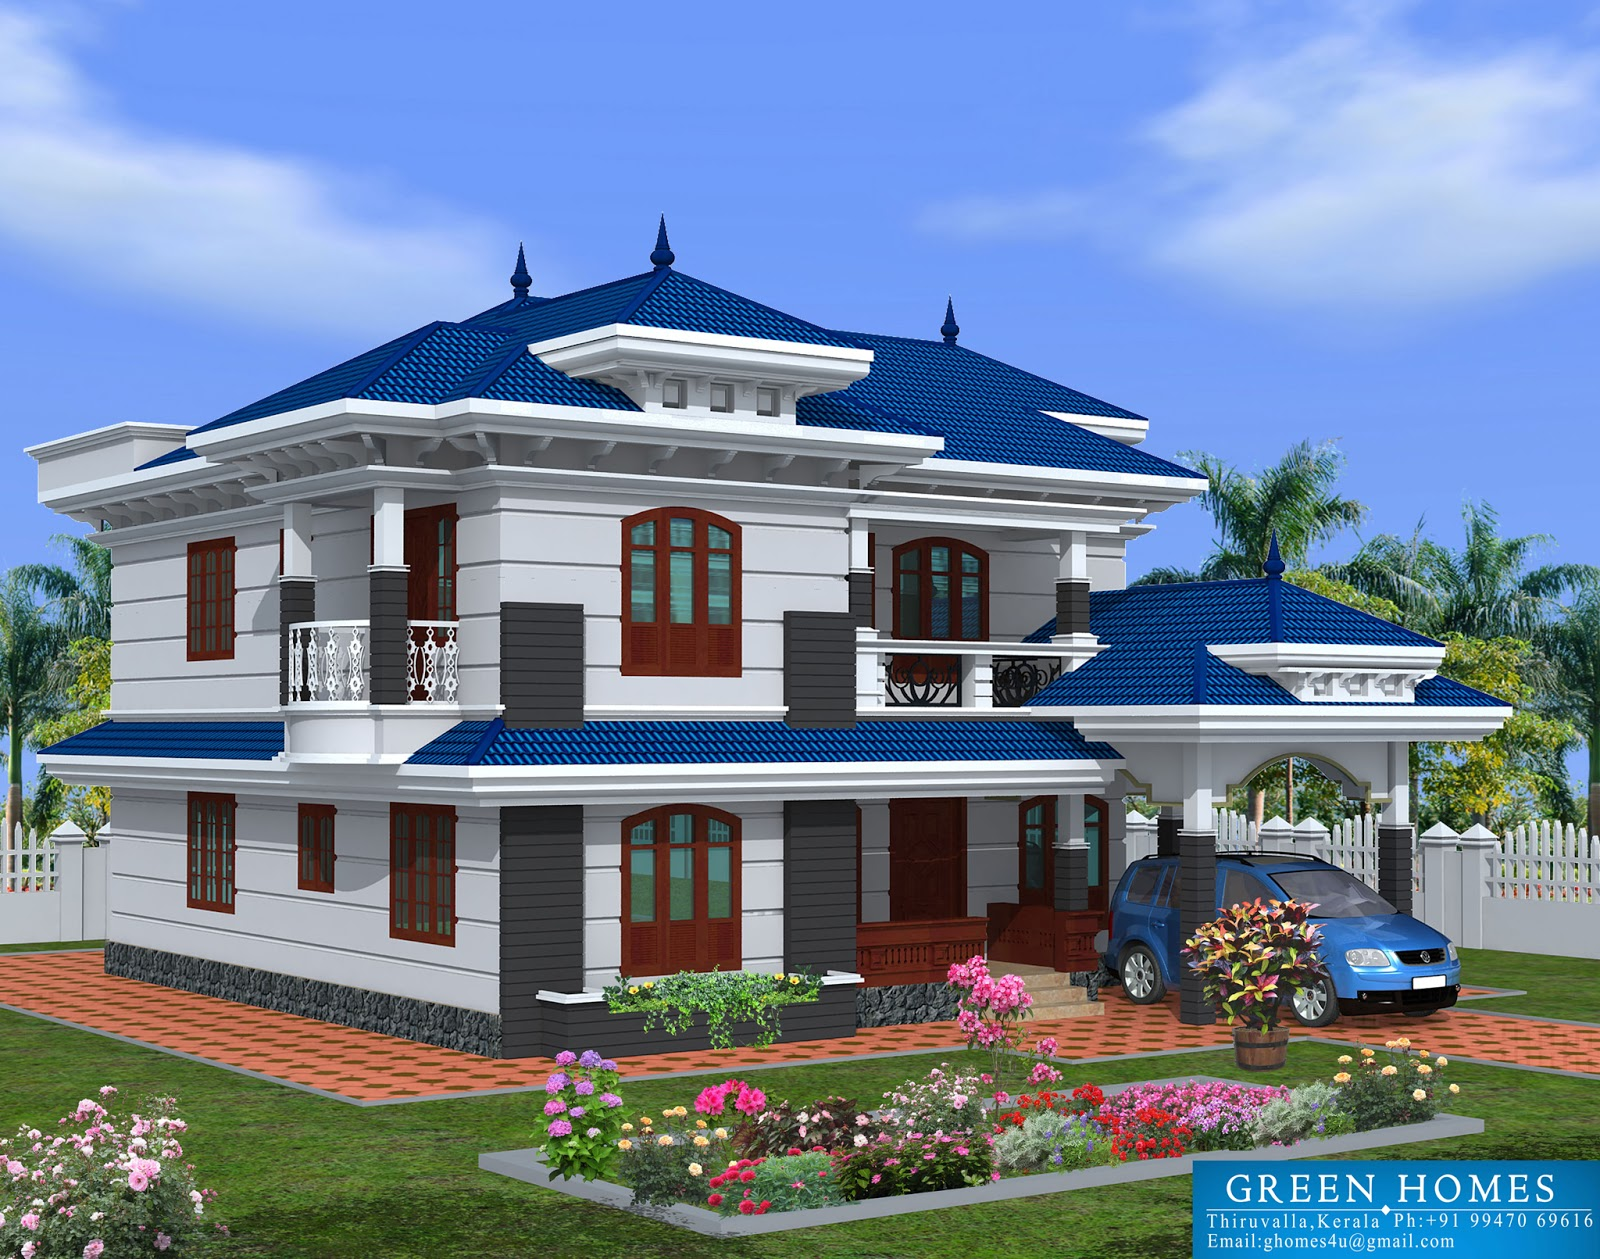 green homes beautiful kerala home design